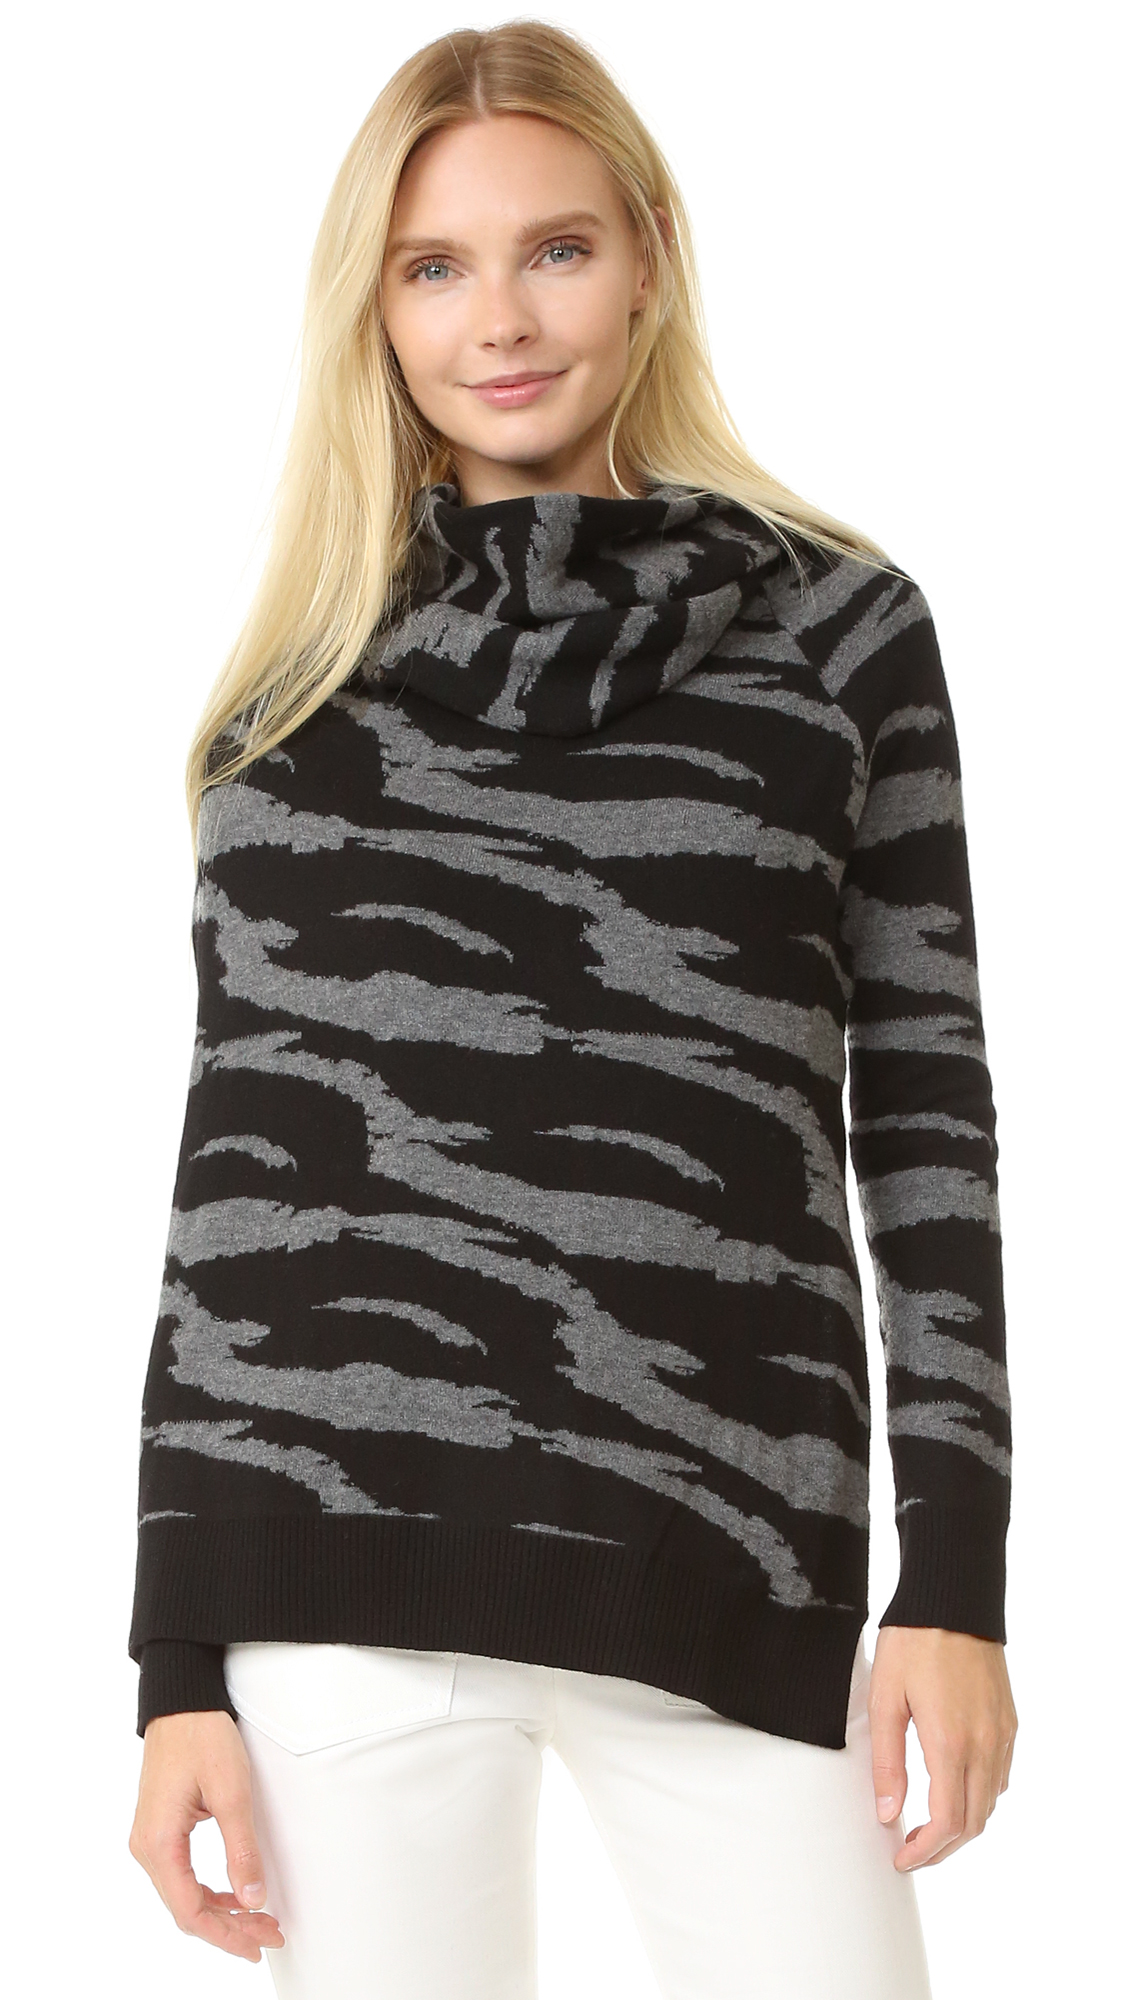 Edun Jacquard Draped Wool Wrap Sweater - Black/Grey at Shopbop